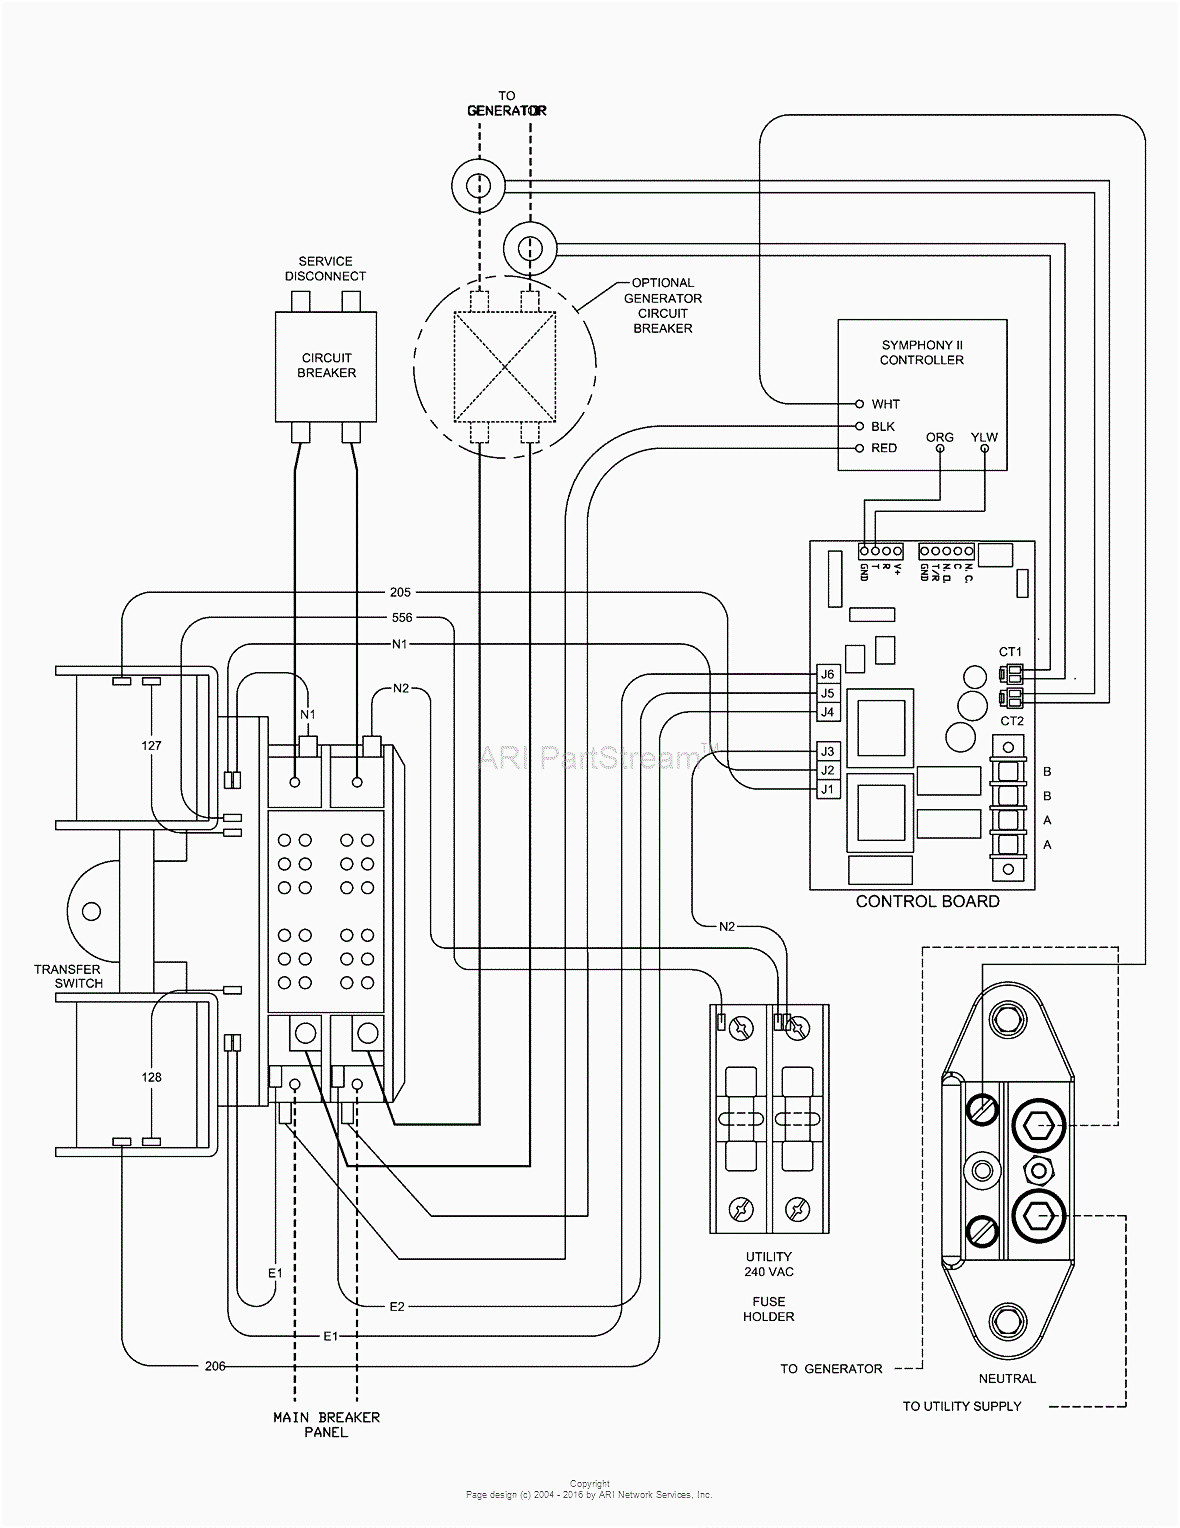 generac ats wiring diagram Collection-Generator Automatic Transfer Switch Wiring Diagram Generac With Fancy Briggs And 9-l